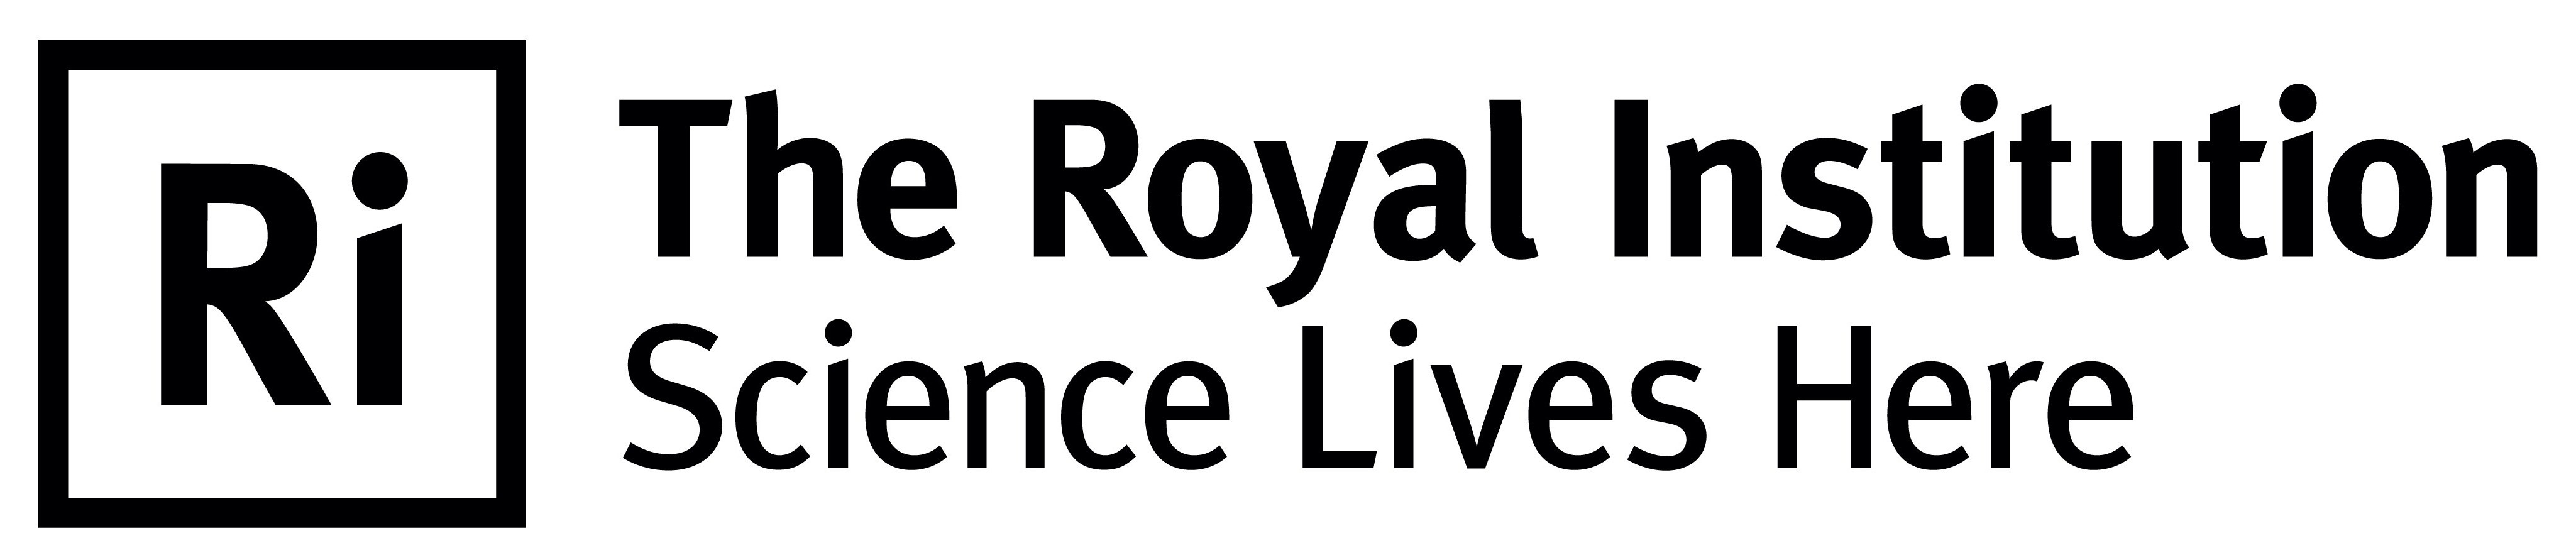 Royal Institution